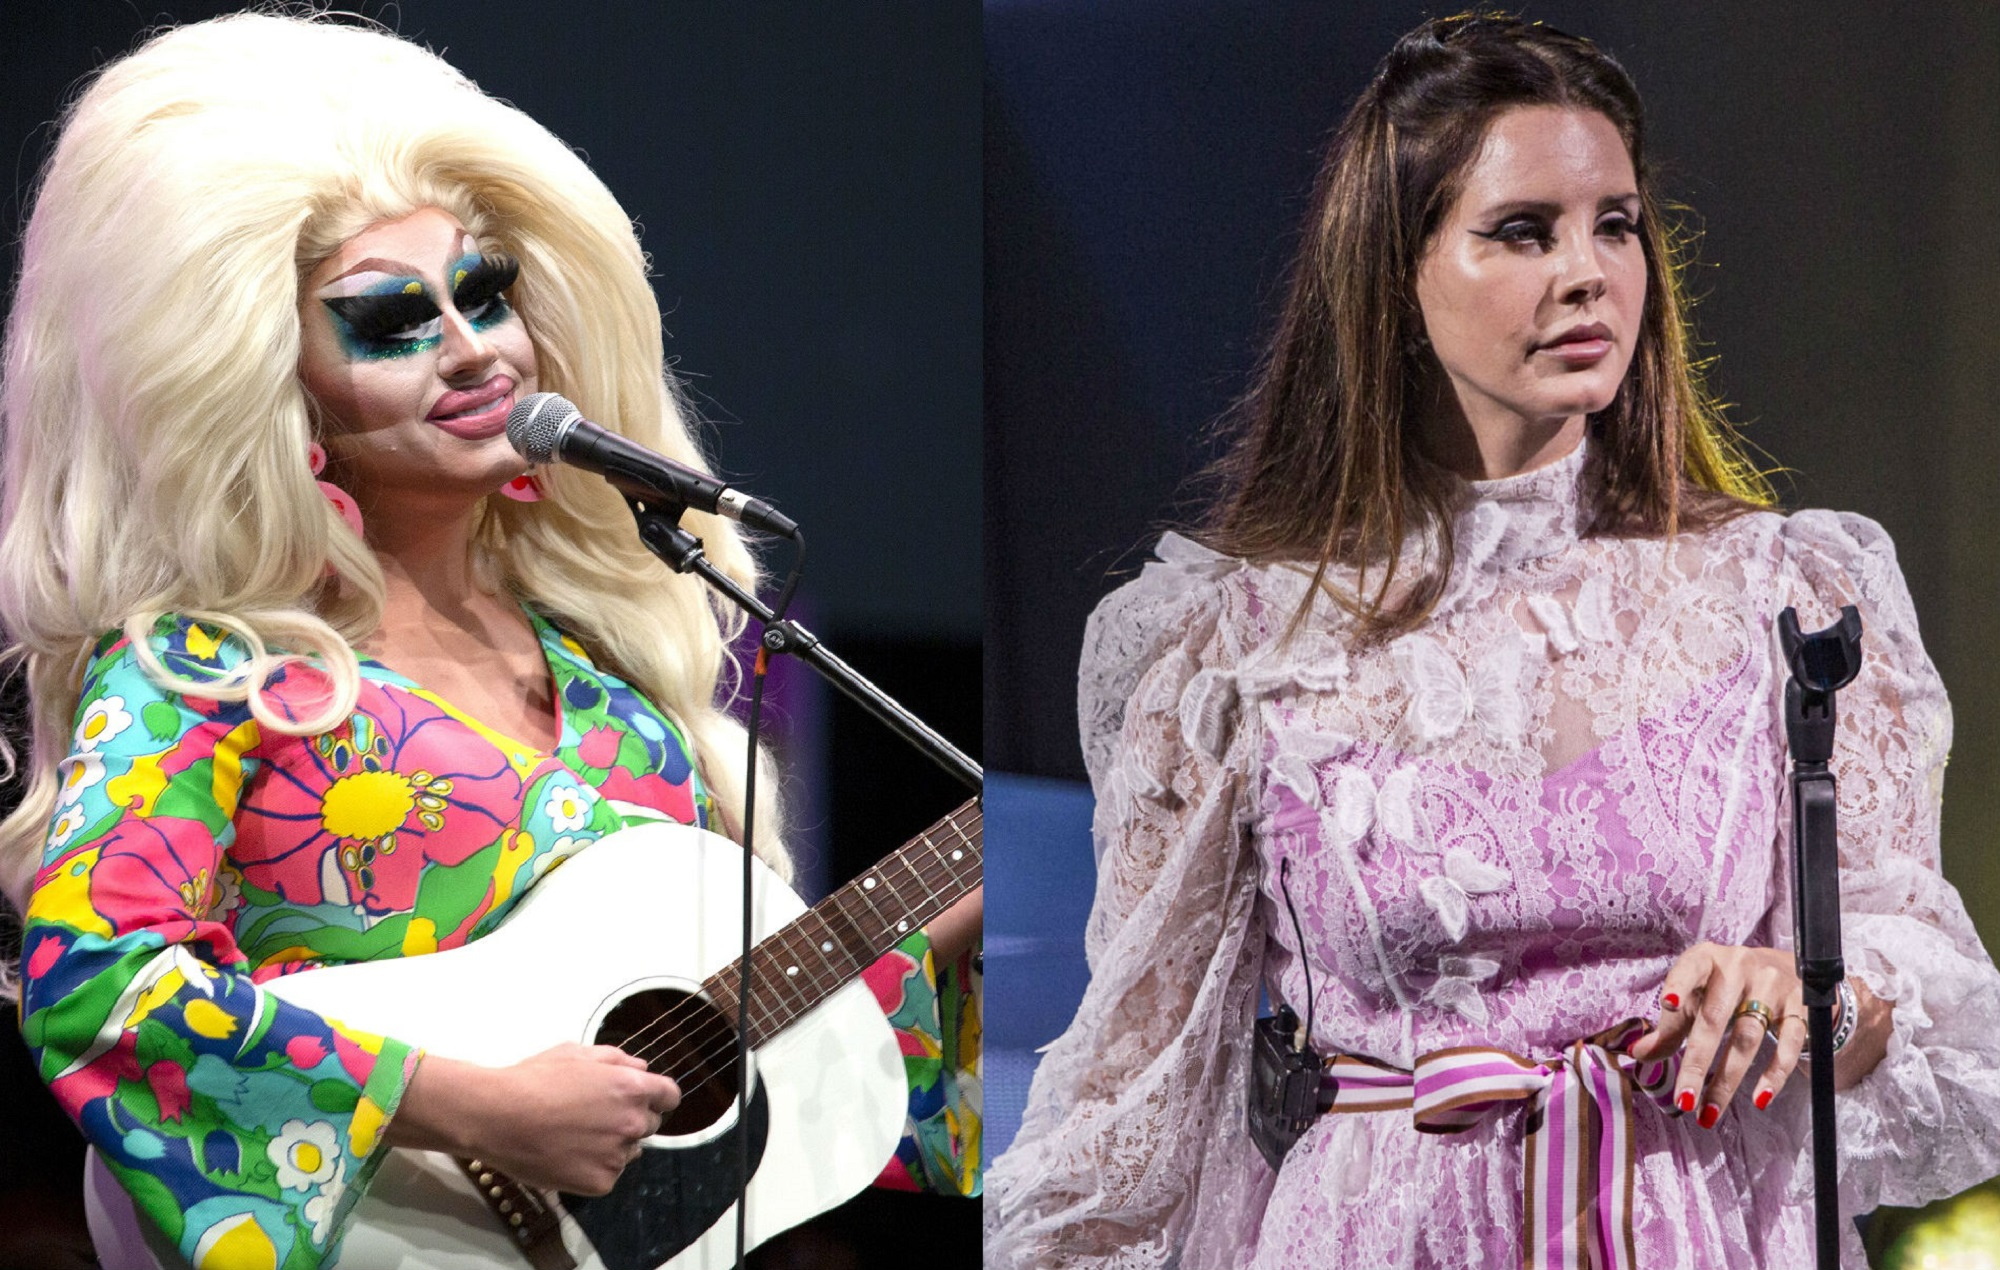 Watch Trixie Mattel's country cover of Lana Del Rey's 'Video Games'